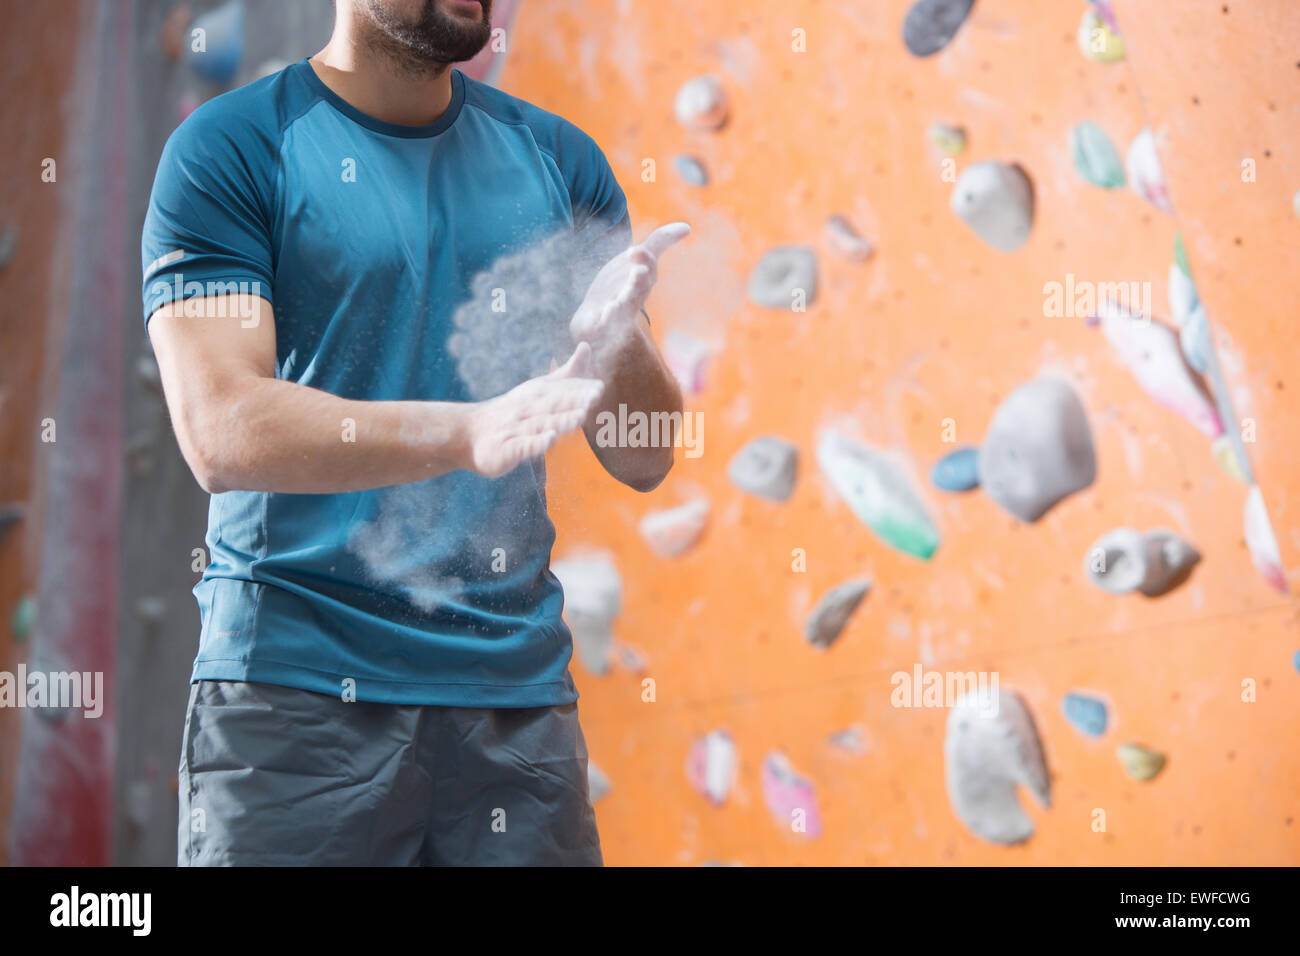 Midsection of man dusting powder by climbing wall in crossfit gym - Stock Image